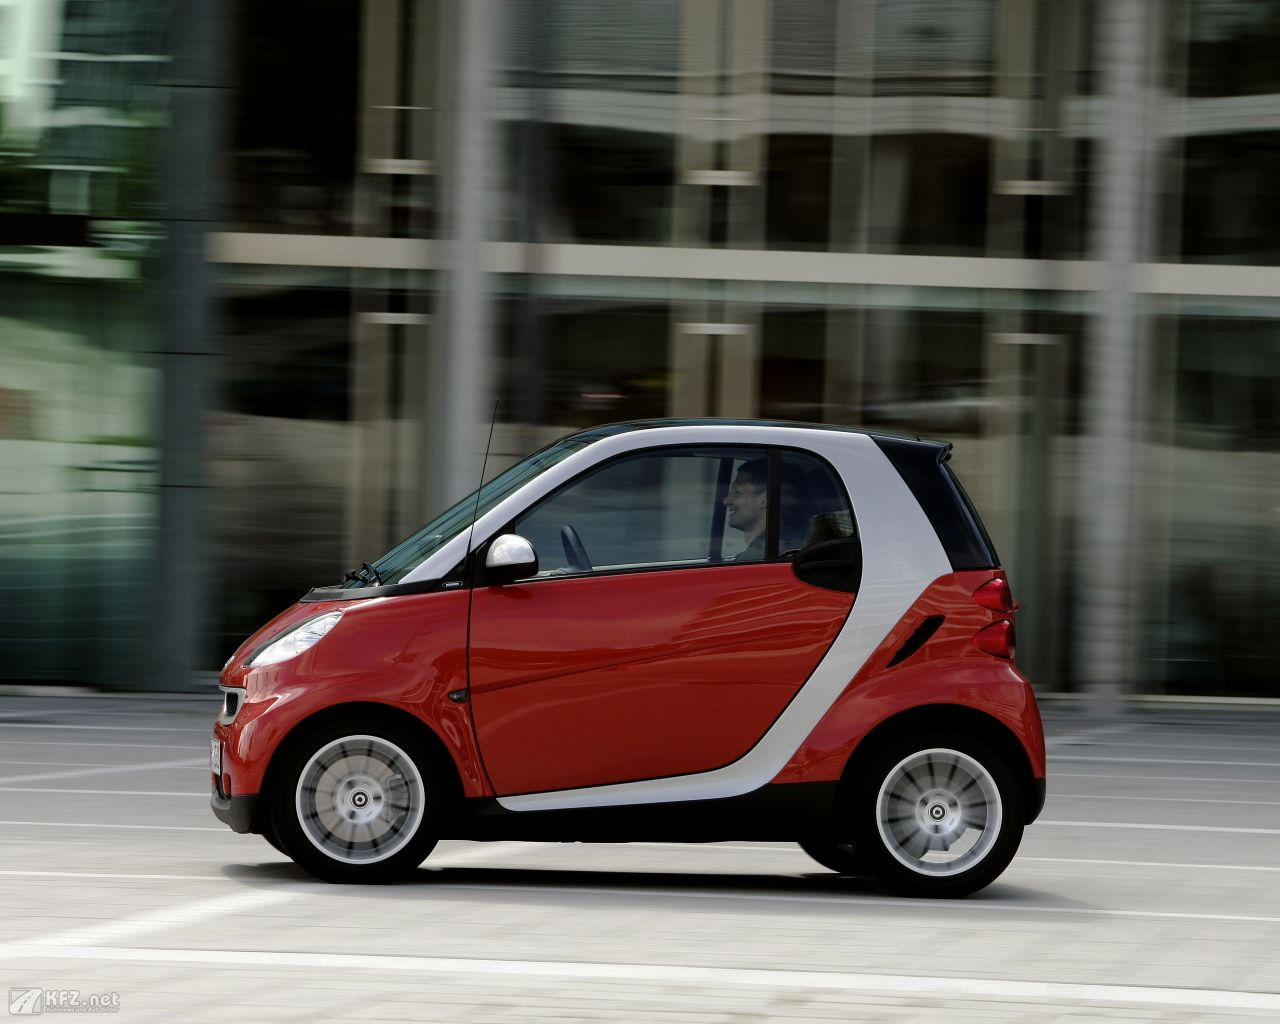 smart-fortwo-1280x1024-3